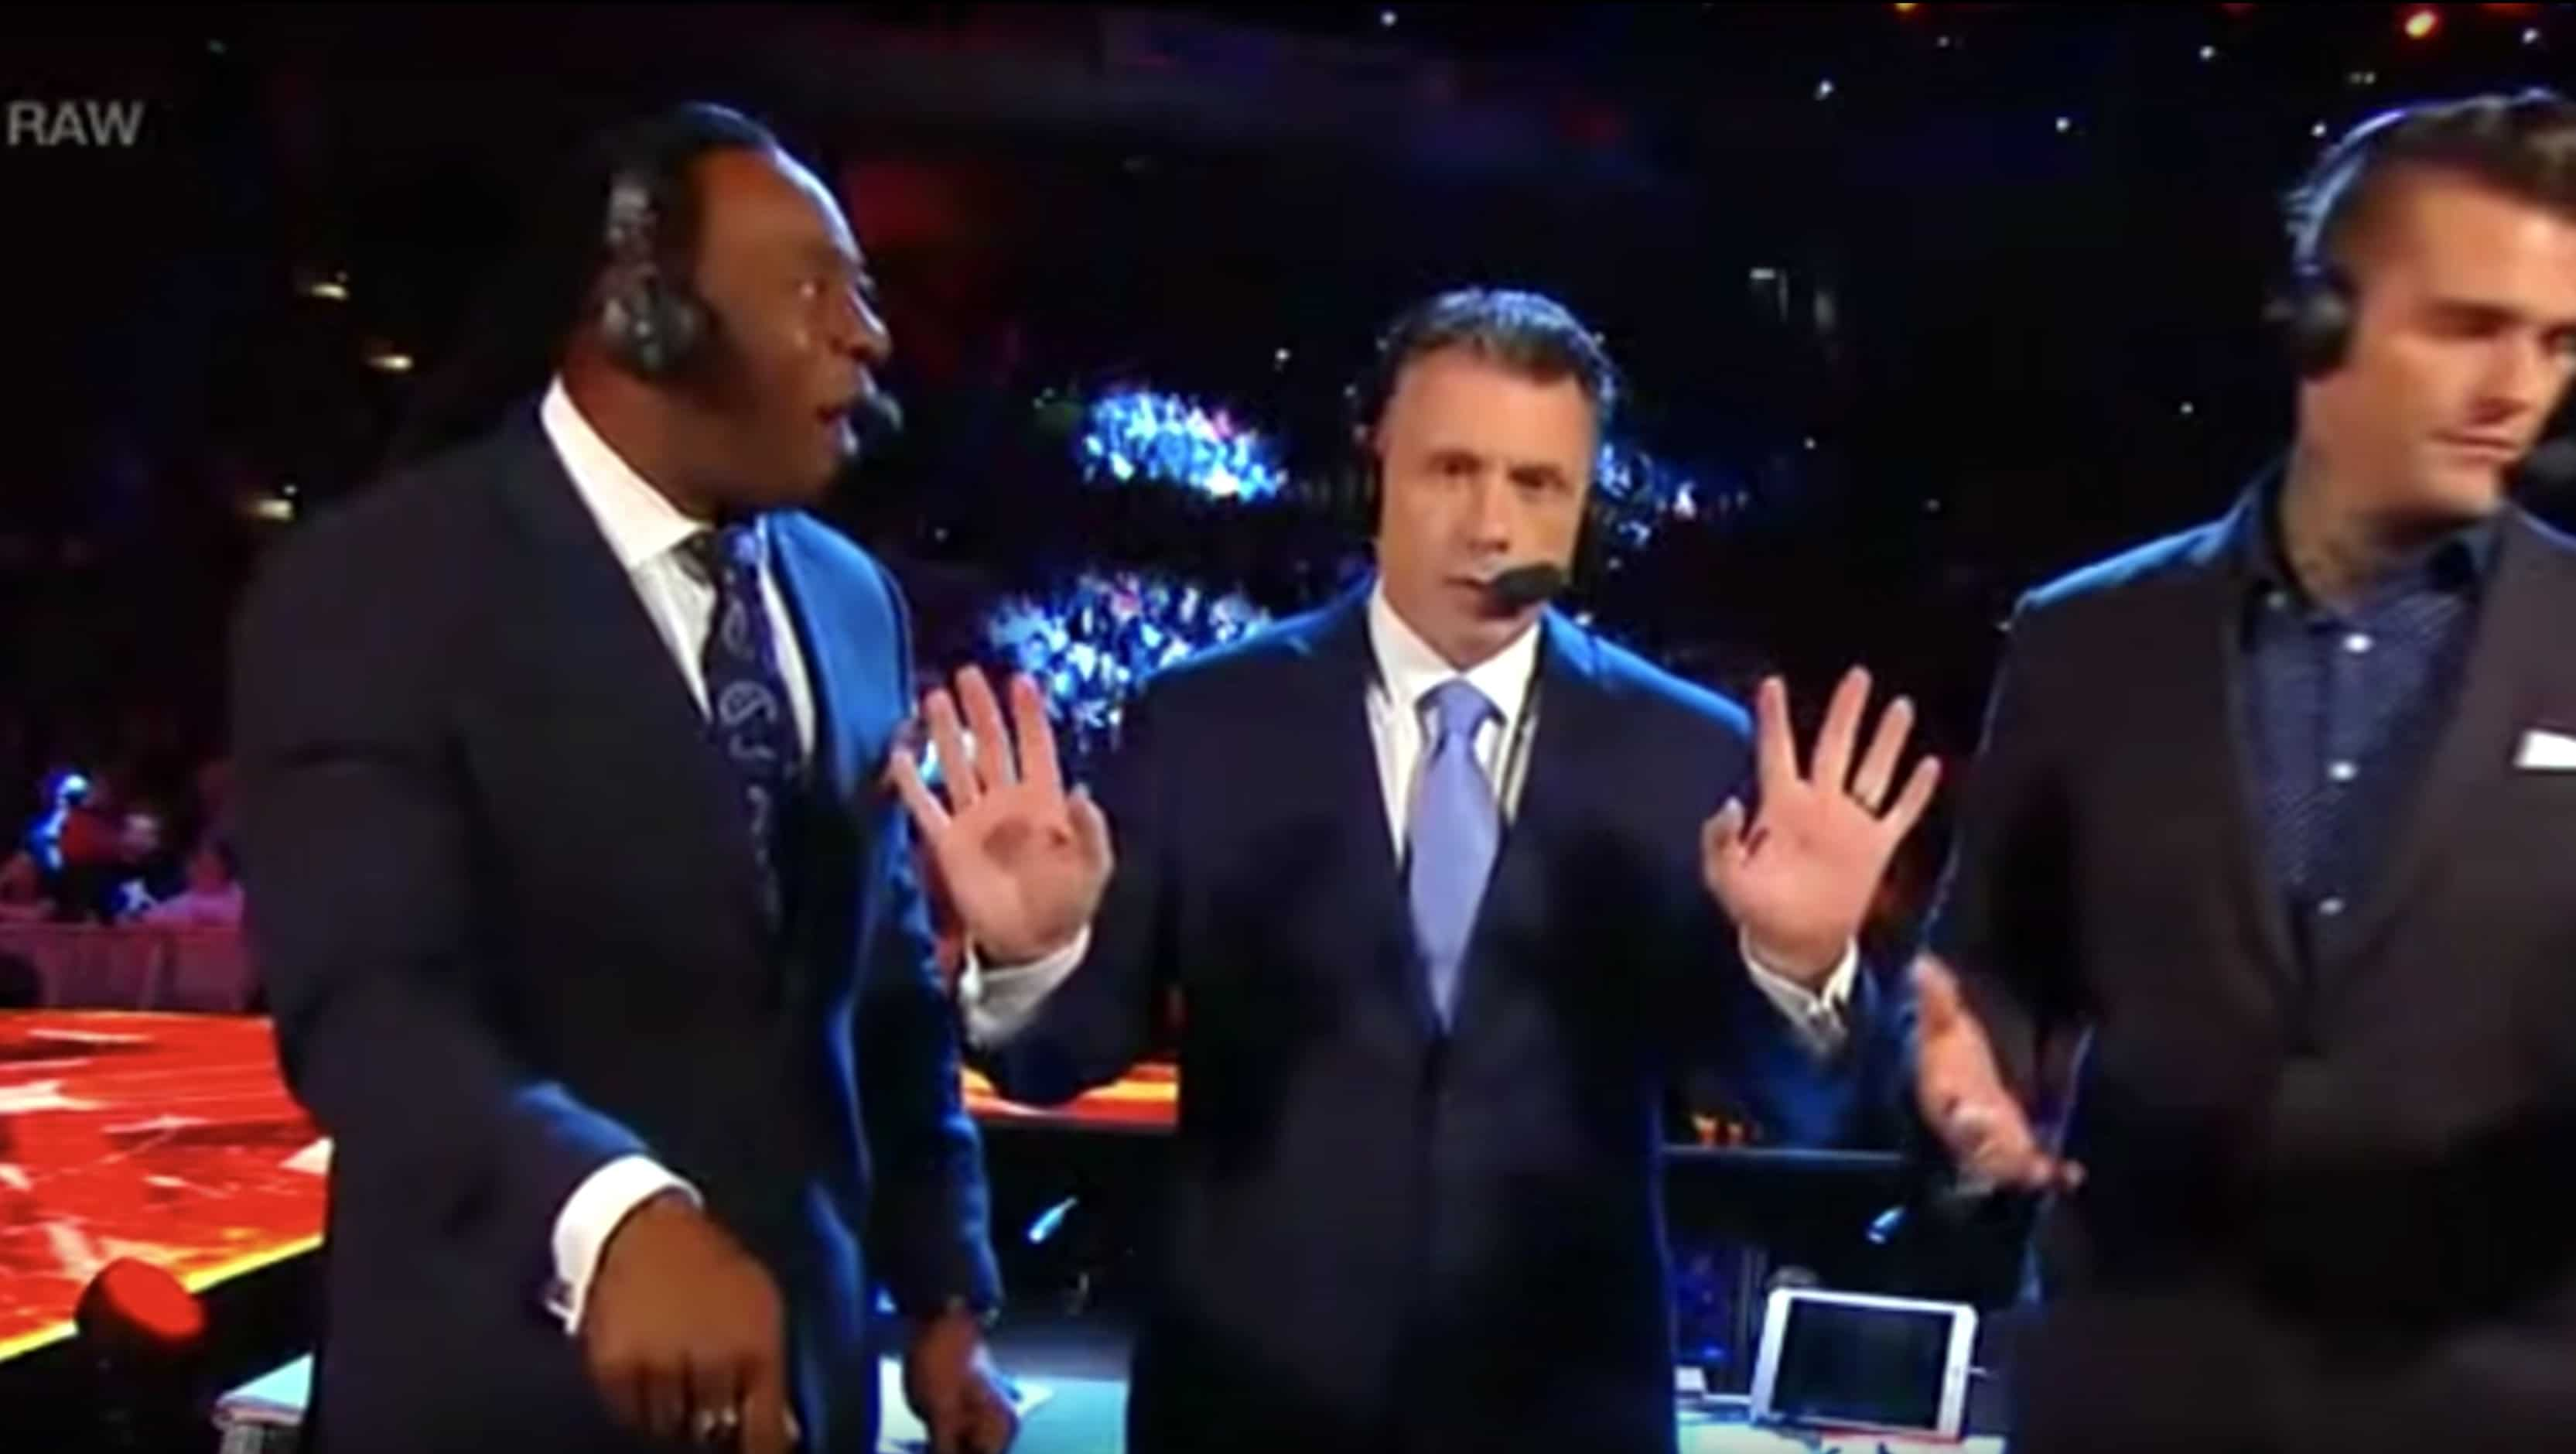 Booker T and Corey Graves working the fans during a commentary session